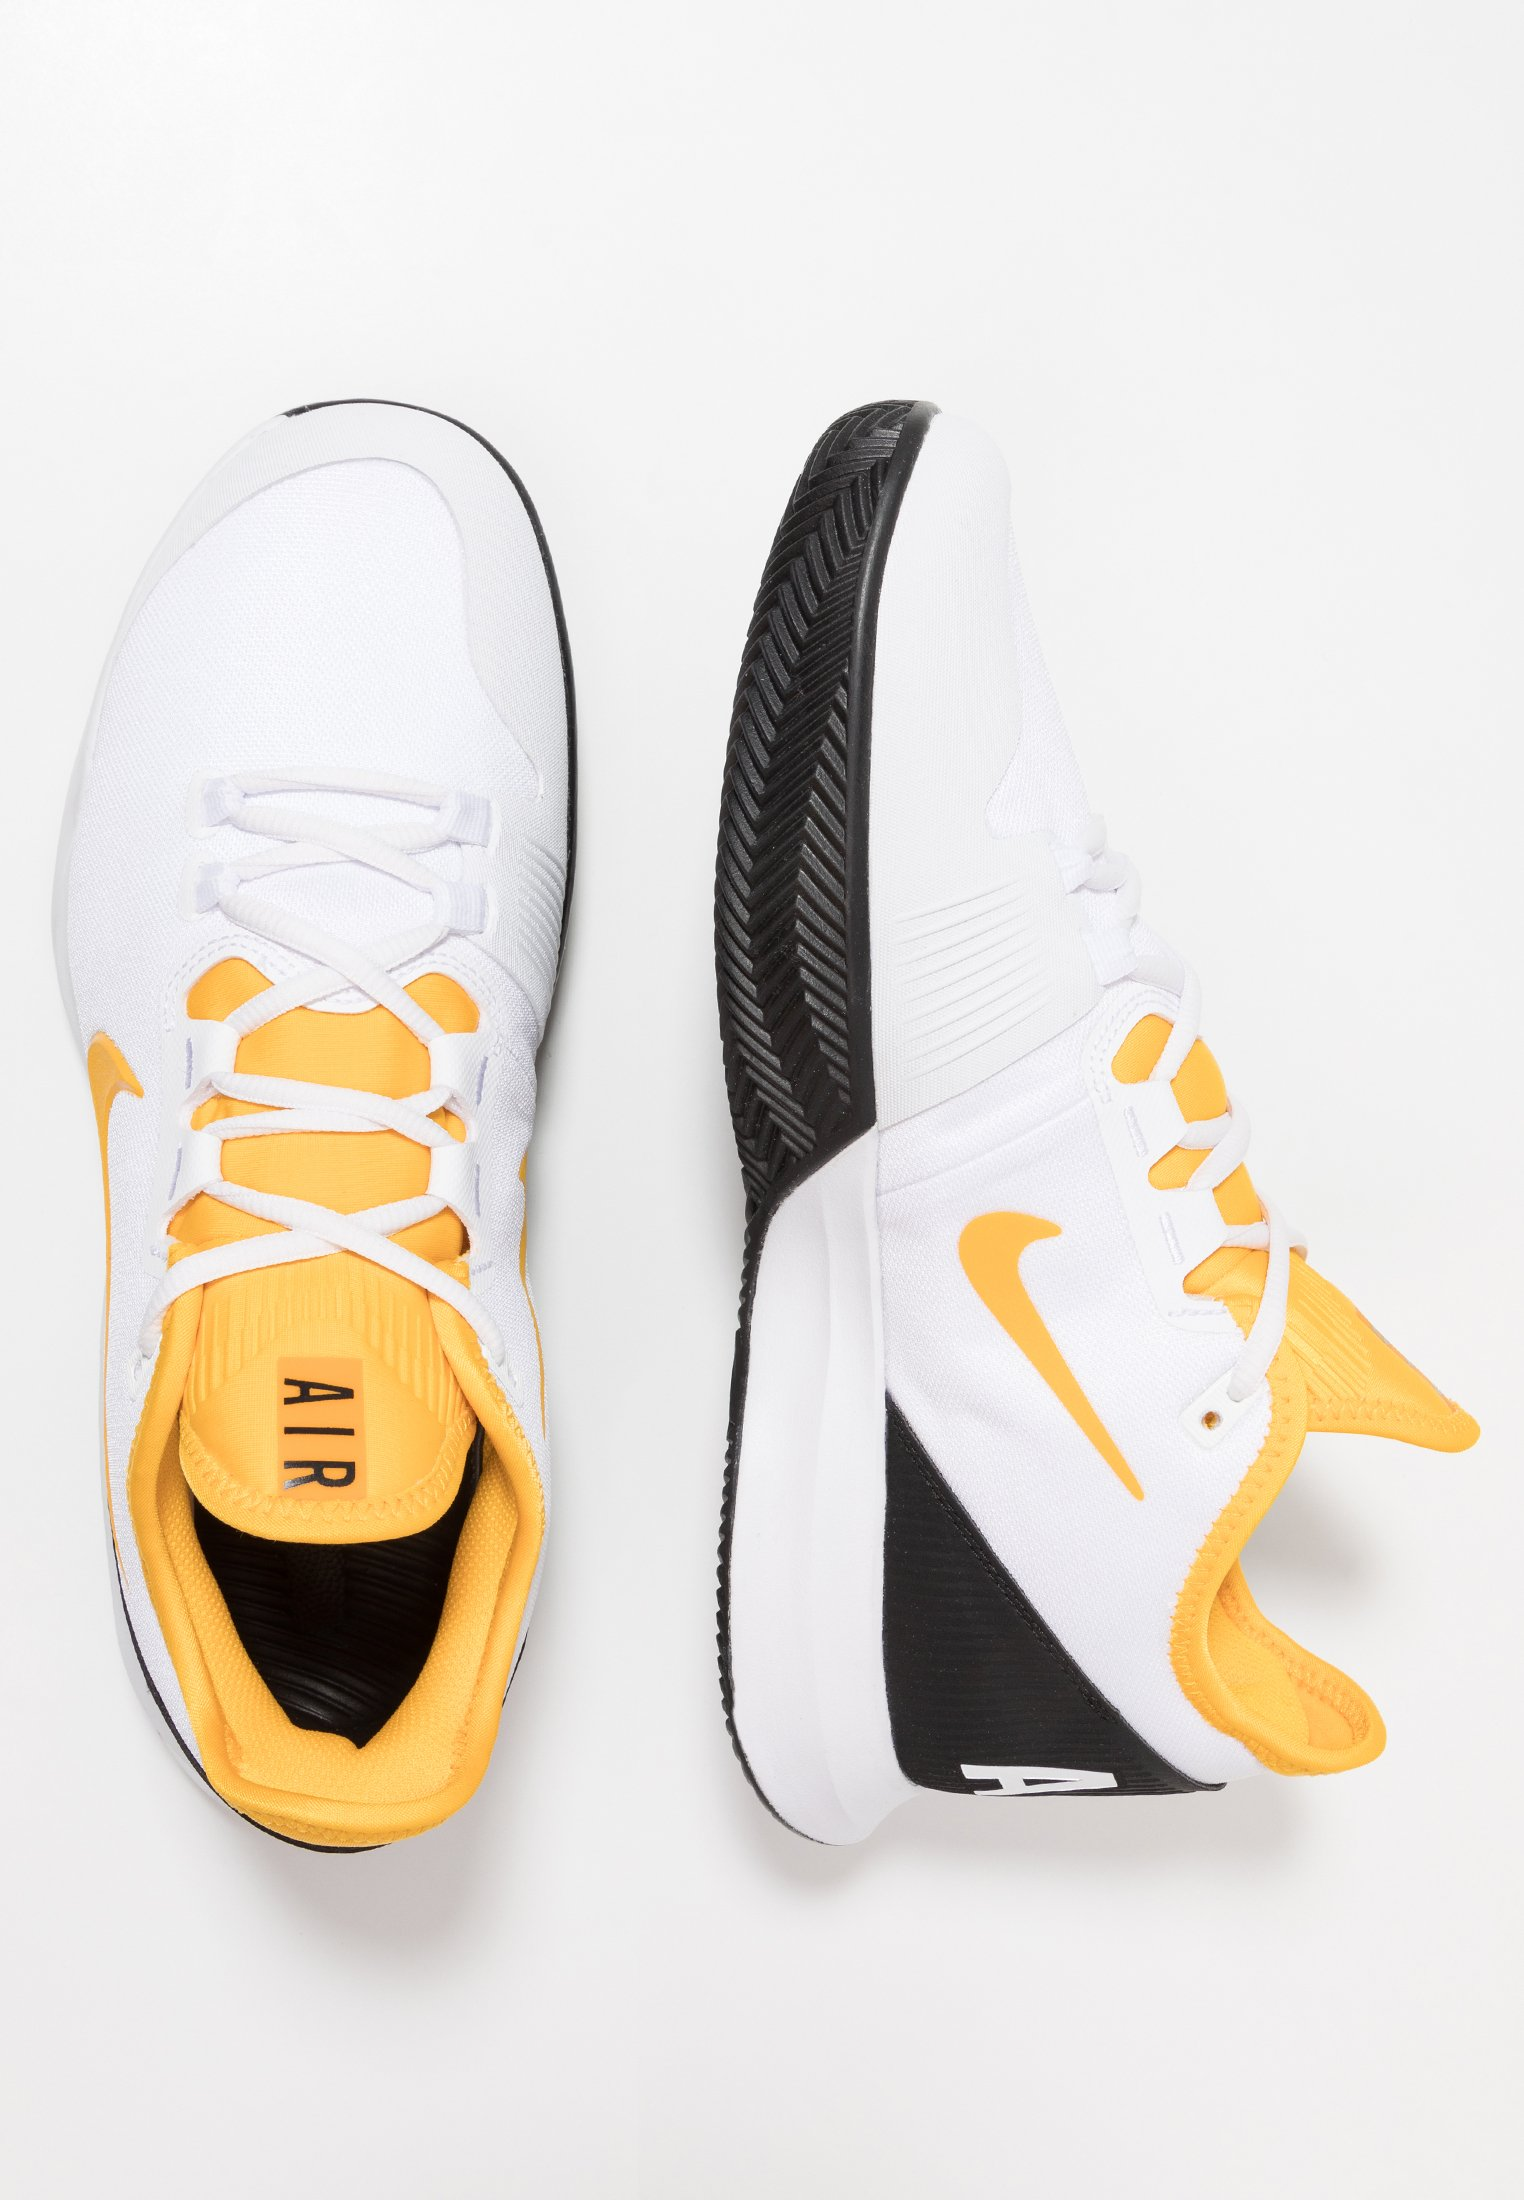 NIKECOURT AIR MAX WILDCARD CLAY TENNISSCHUH FUR MANNER da tennis per terra battuta whiteuniversity goldblack